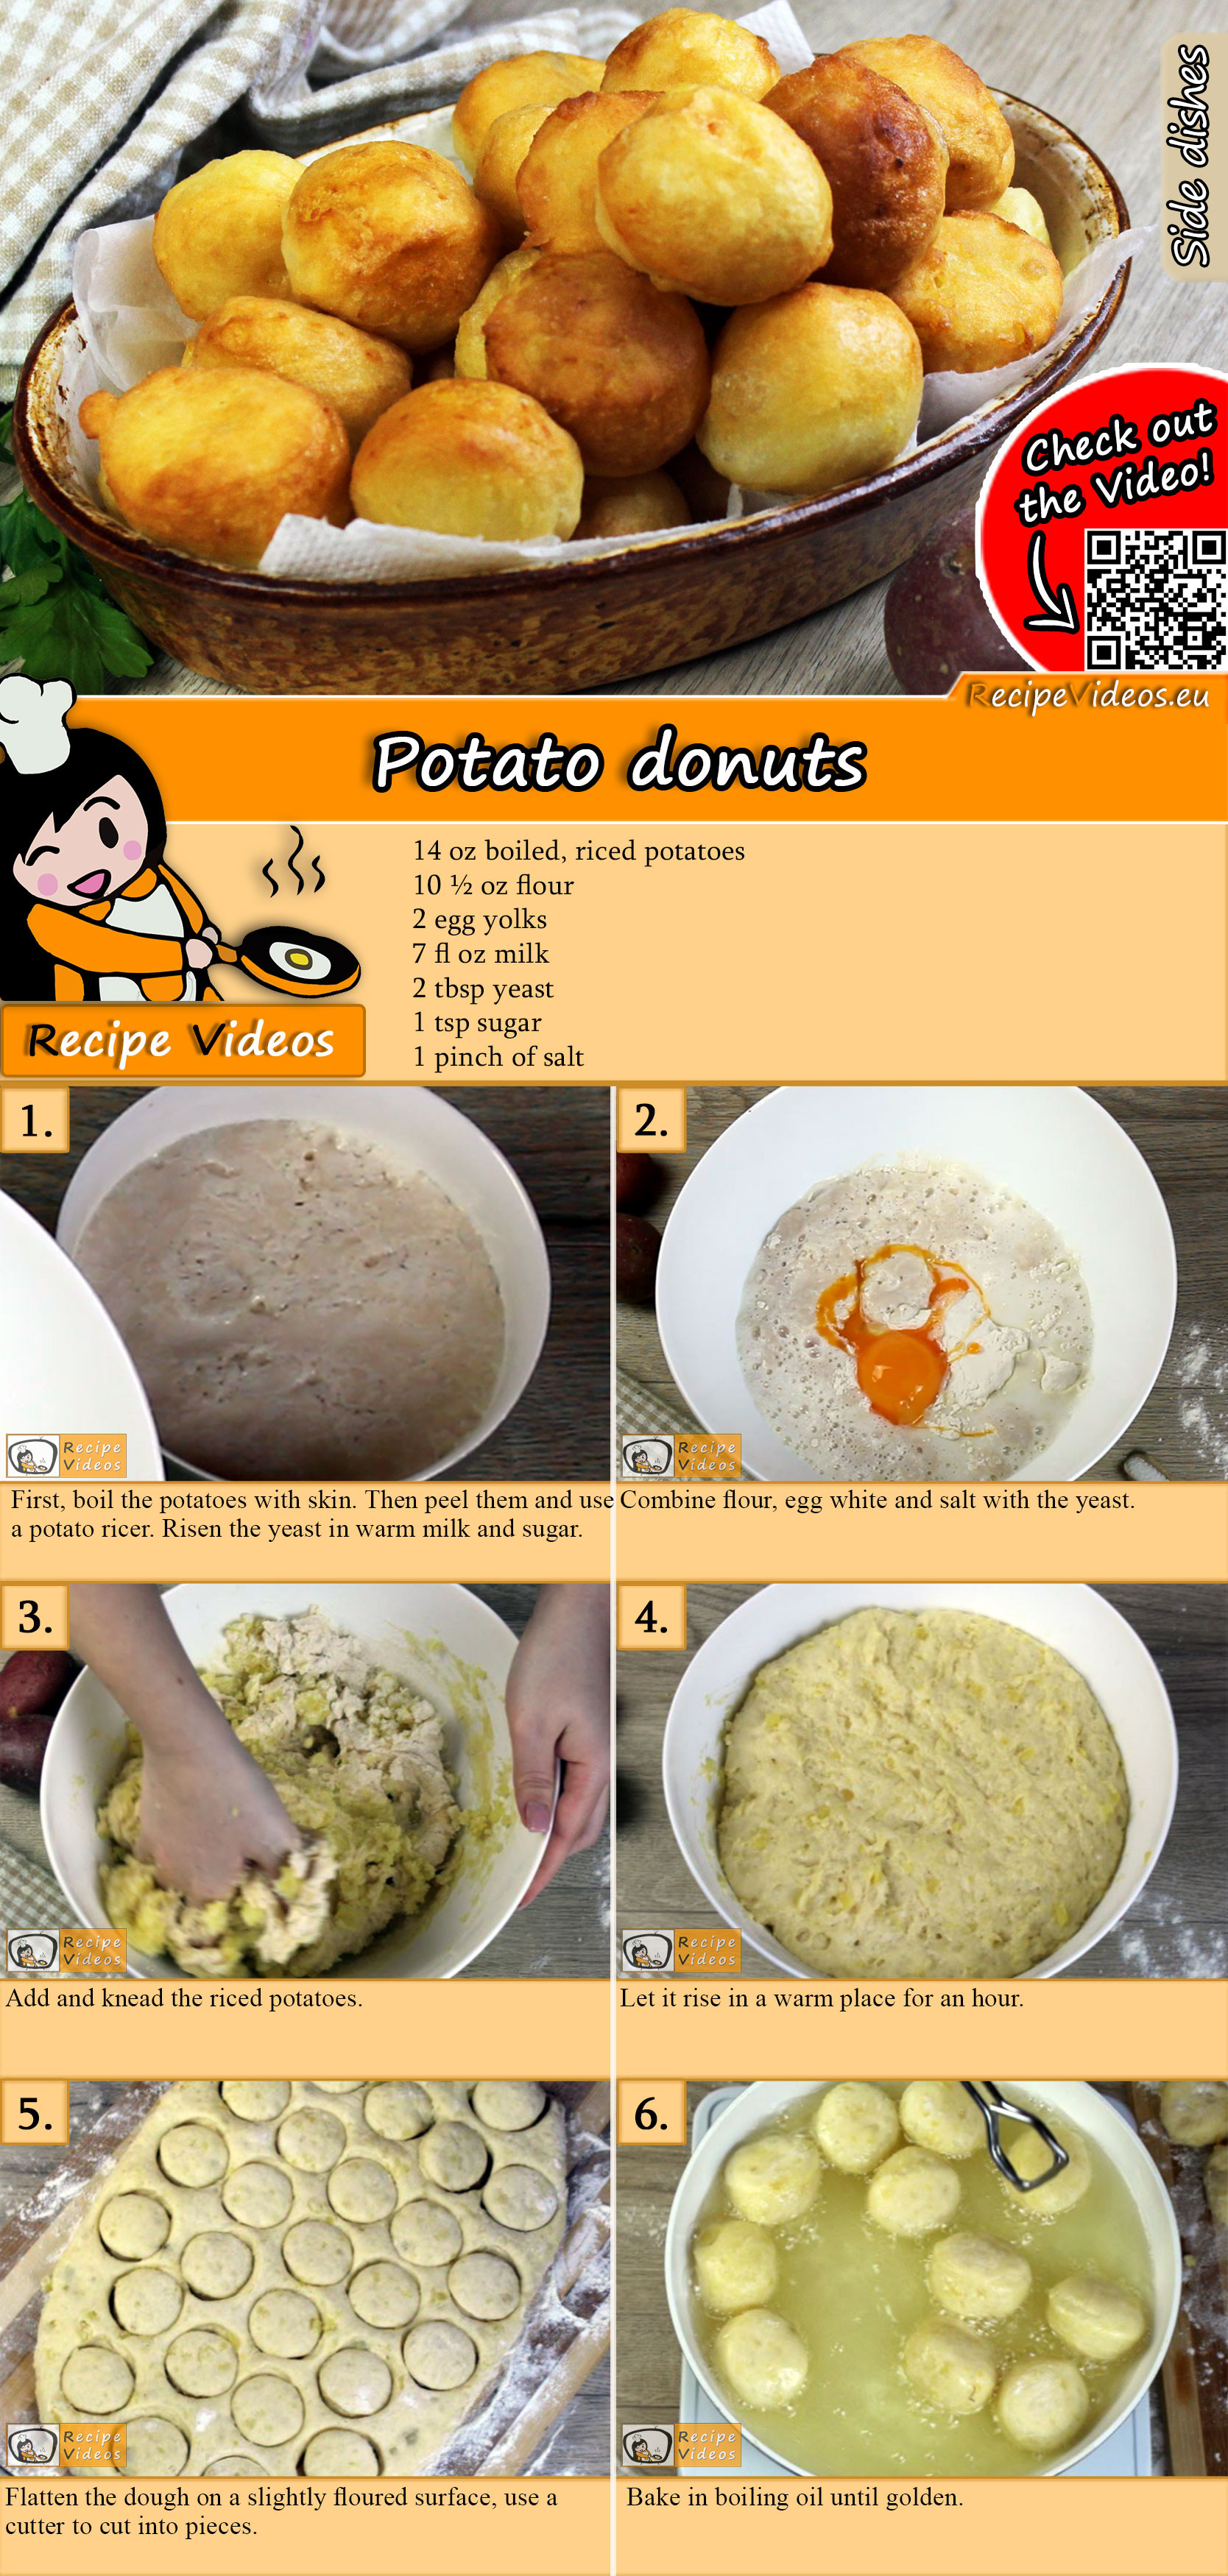 Potato donuts recipe with video